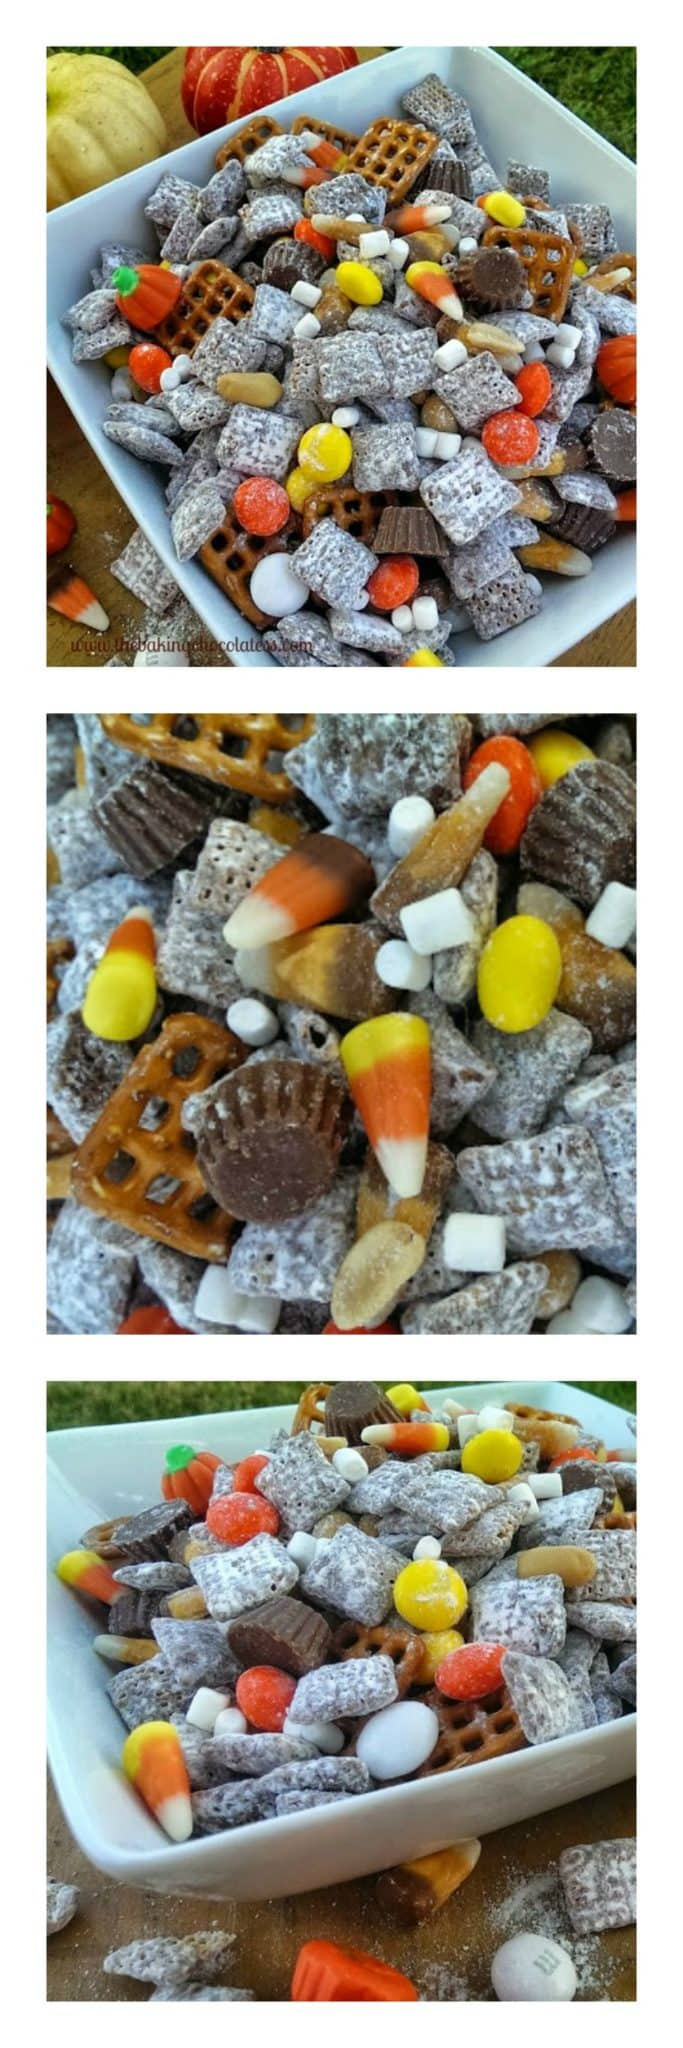 Halloween 'Party' Puppy Chow - Celebrate Halloween in 'party' mode with this yummy, addictive munchie, crunchy corn chex mix drenched with chocolate and peanut butter flavors, partied up with a Halloween candy mix, pretzels and peanuts! Party on Frankenstein! Party on Dracula! Get your munchie fix here, little monsters!